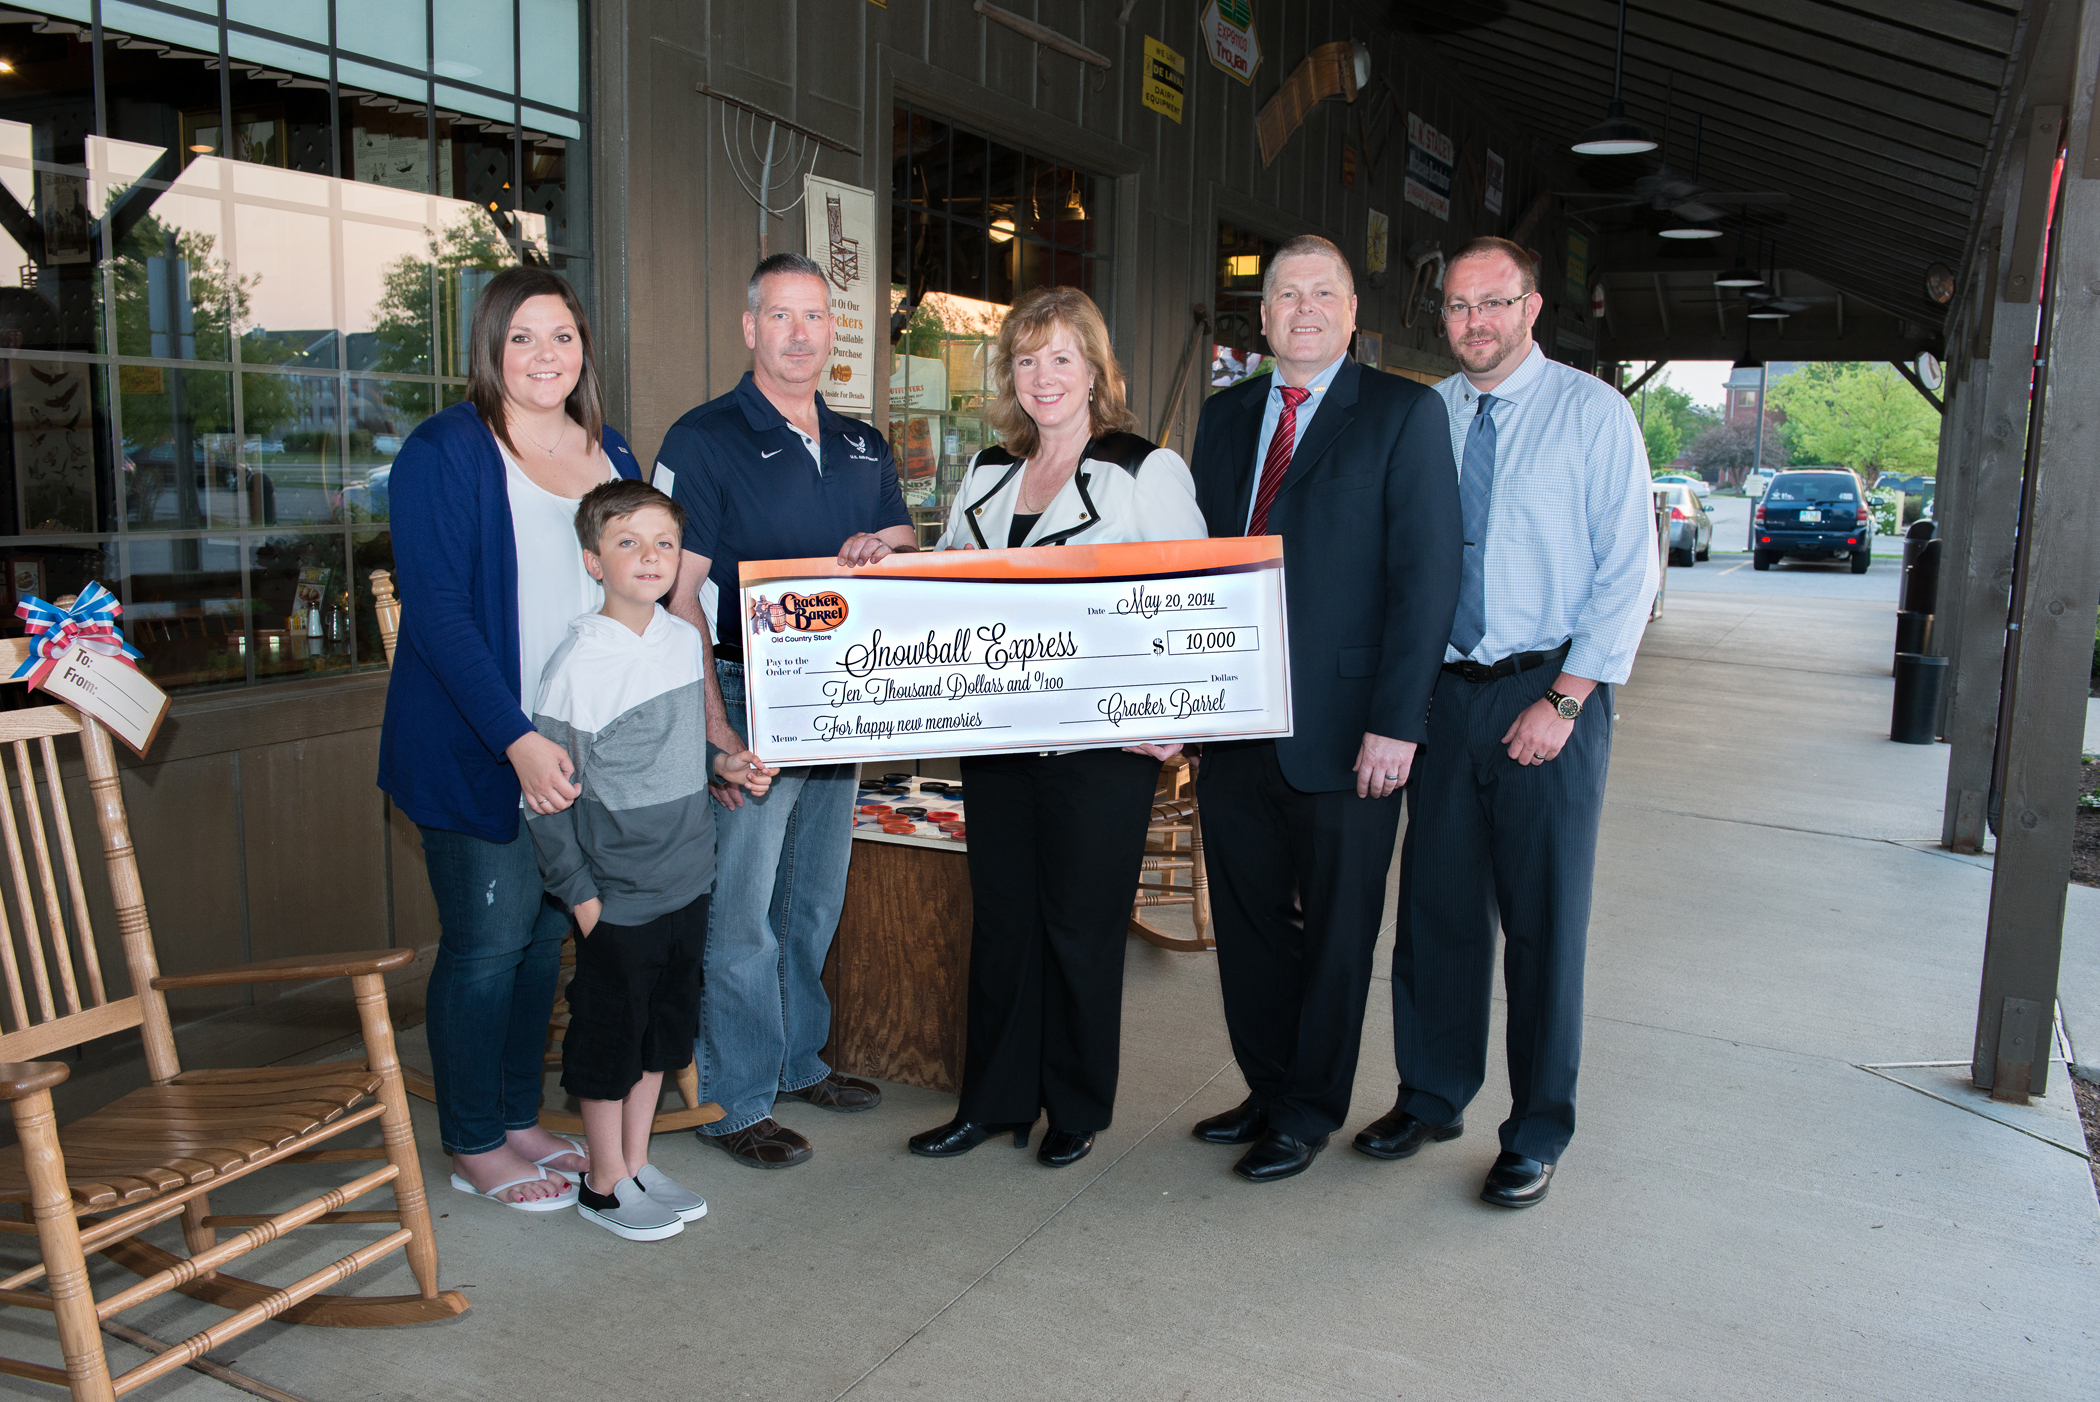 On hand to accept the check is eight year old Myles Eckert, who found a $20 bill in this Maumee, Ohio Cracker Barrel store's parking lot last February and generously gave the money to airman Lt. Col. Frank Dailey, who was in the restaurant that day with his family. Myles father was killed by a roadside bomb in 2005. Snowball Express assists military families like Myles' who have lost a parent killed during active duty. Pictured (L – R) Tiffany Eckert, Myles mother; Myles Eckert; Lt. Col. Frank Dailey, Deb Fratrik, Cracker Barrel Sr. Vice President; Dean Pickett, Cracker Barrel Maumee, OH store manager; and Randy Crafton, Cracker Barrel District Manager. (Photo: Business Wire)